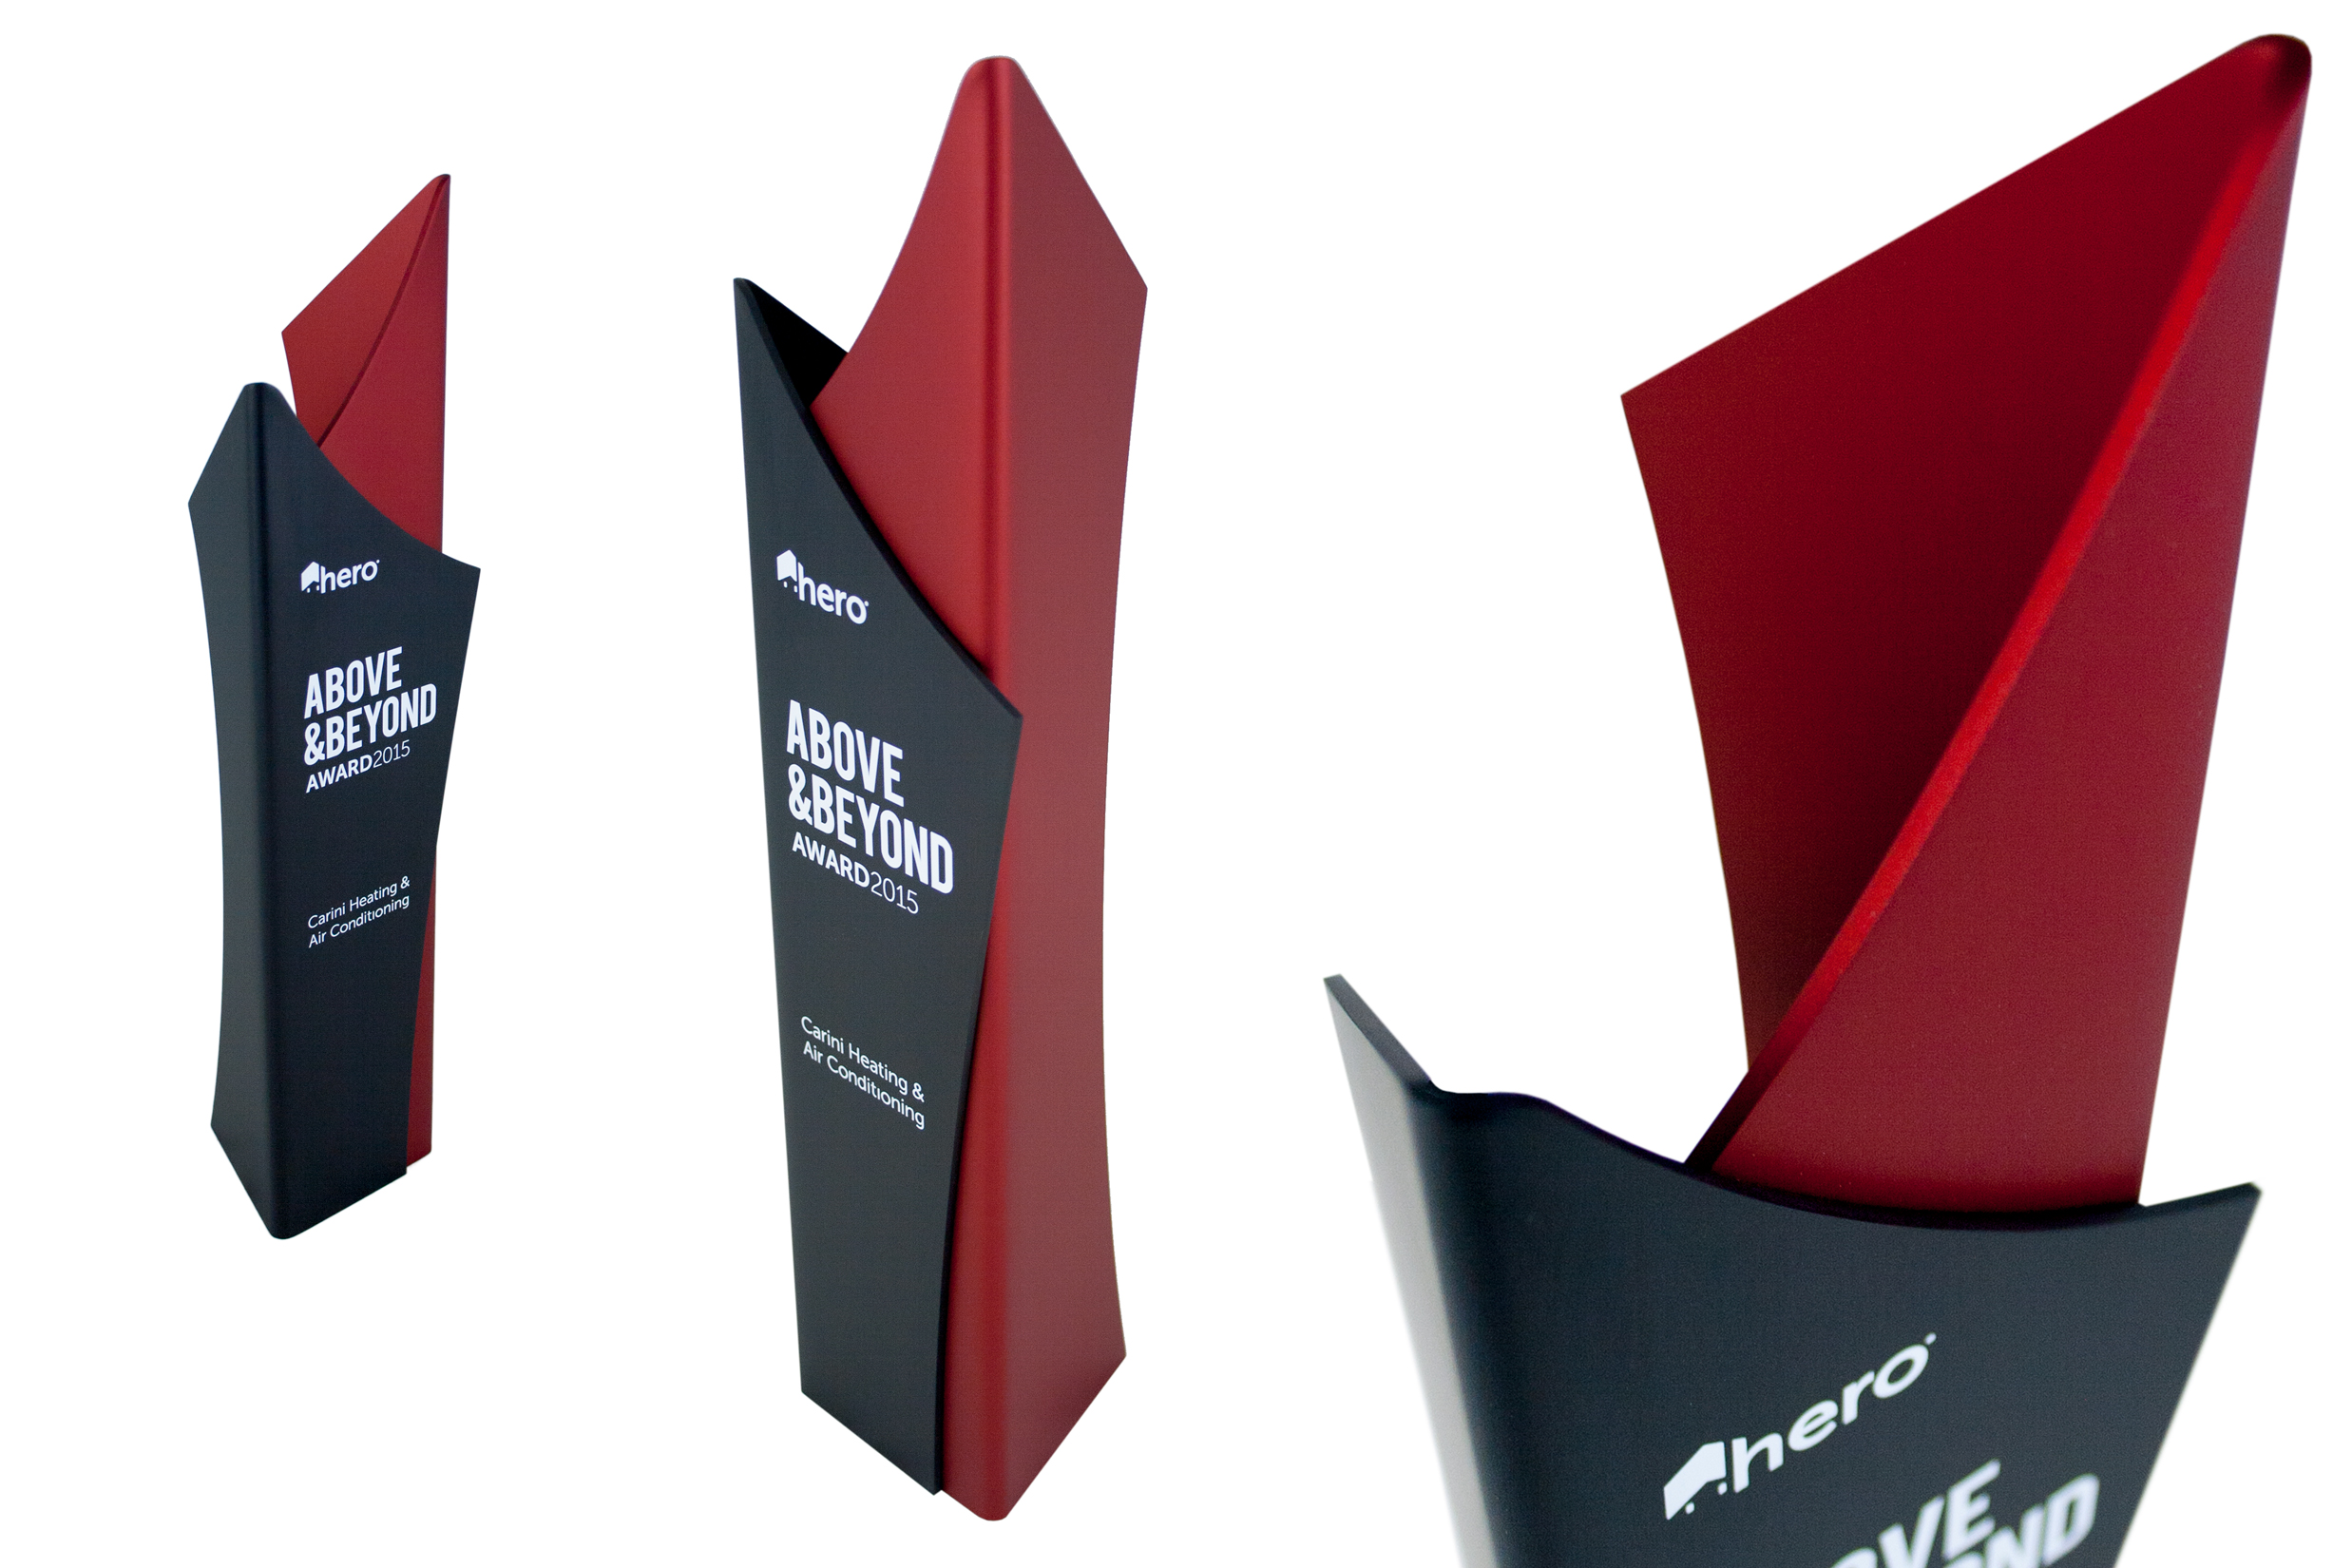 hero above and beyond awards -tall modern trophy design